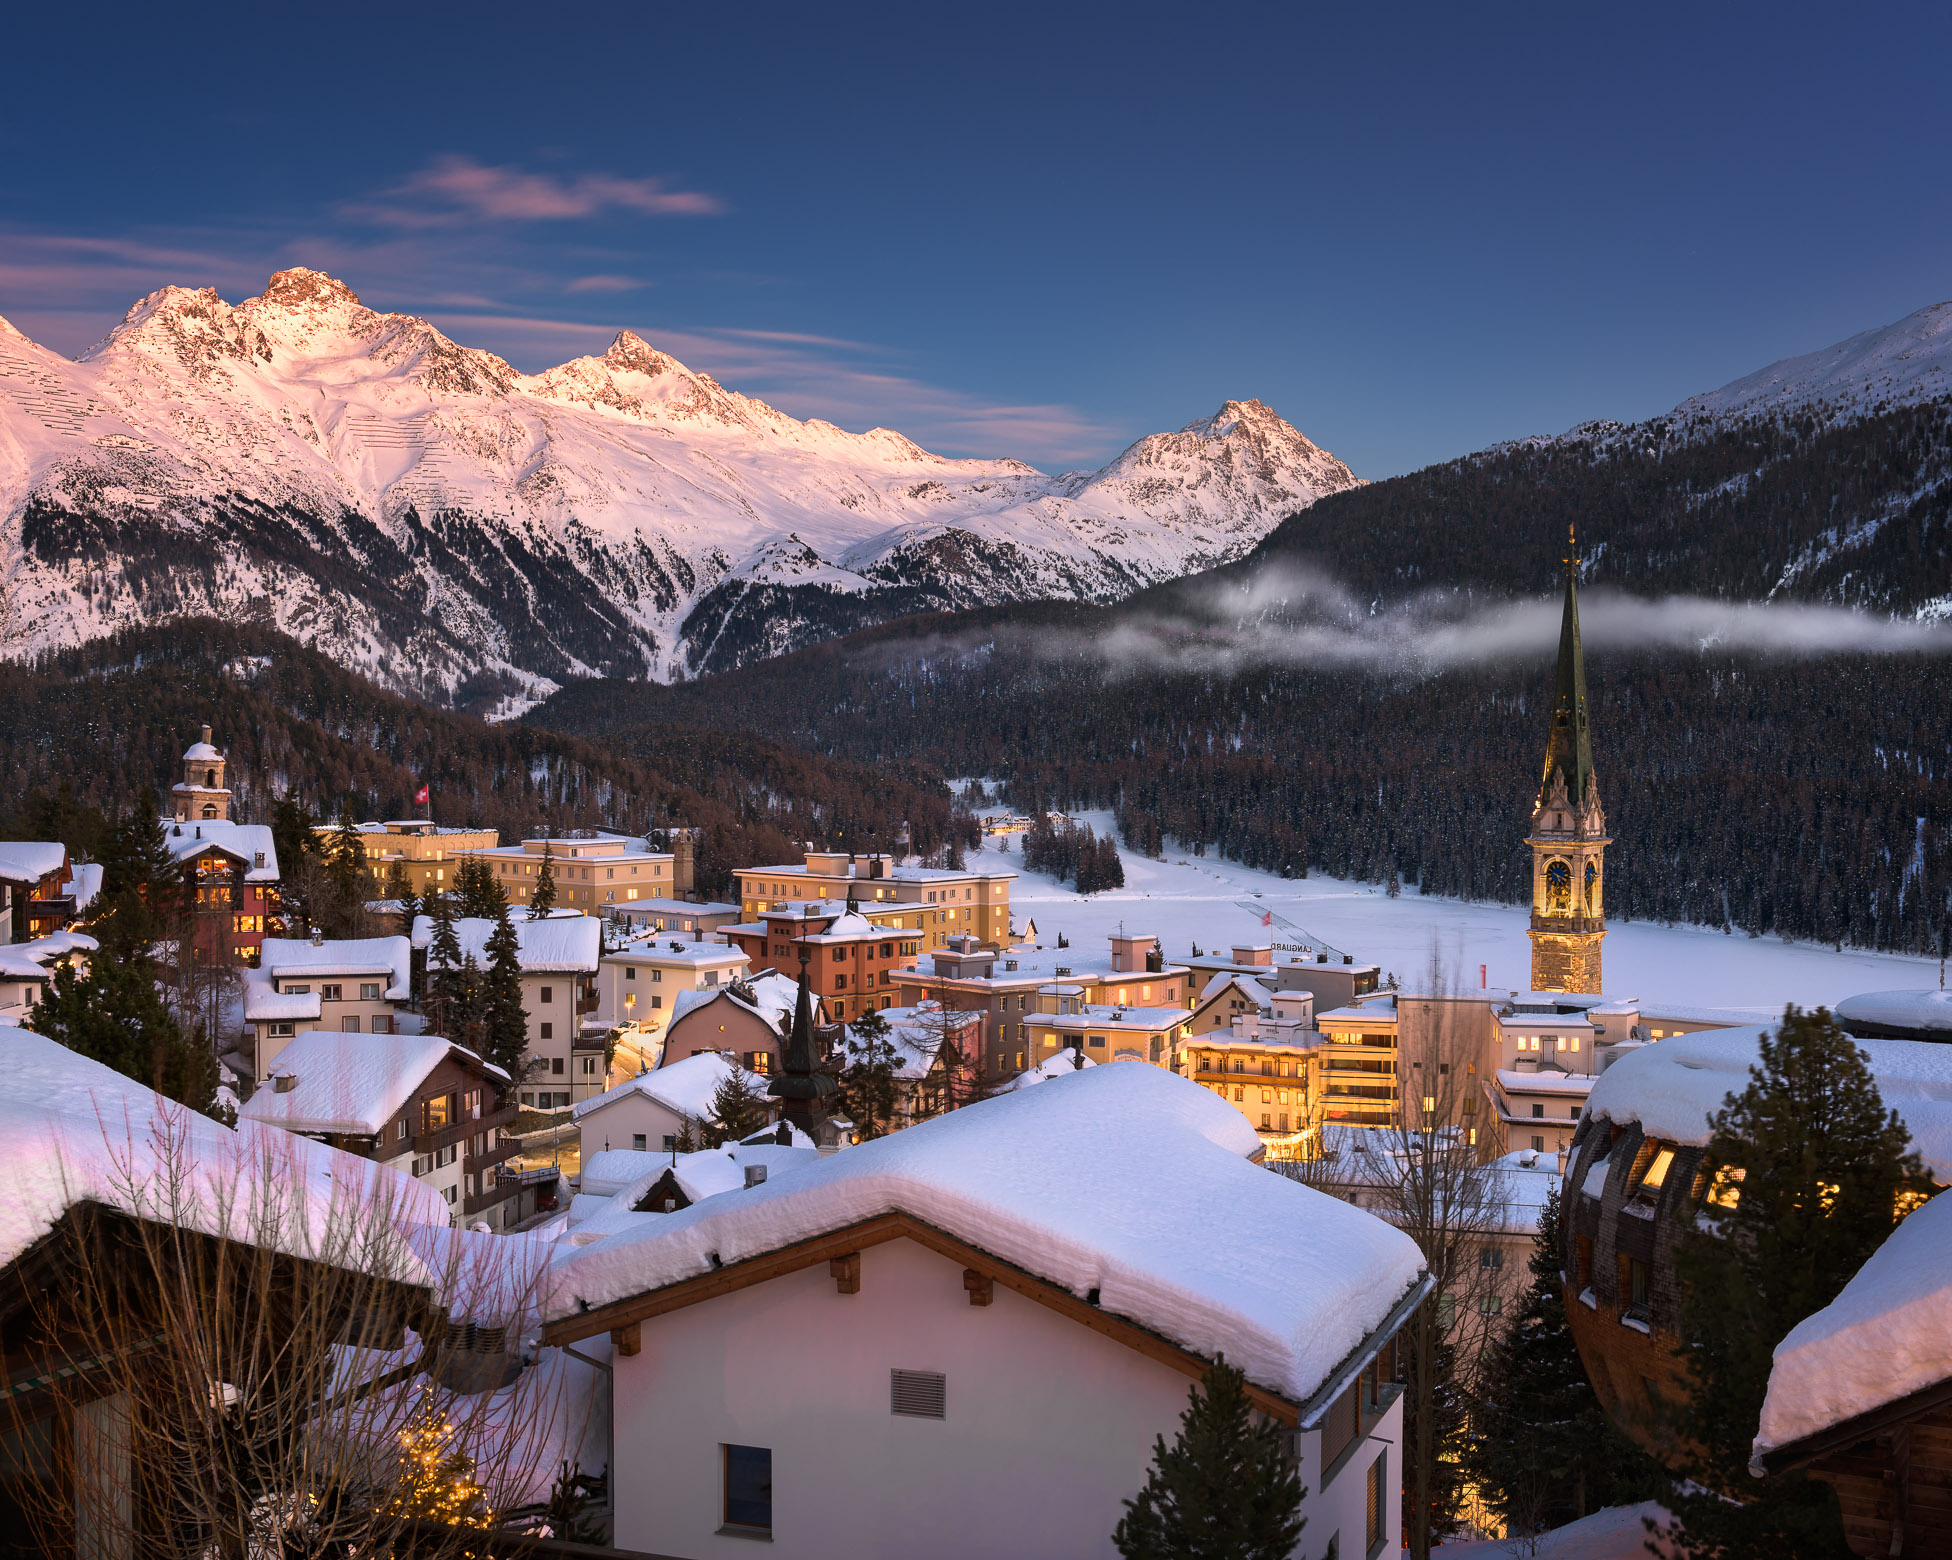 View of St Moritz in the Morning, Switzerland